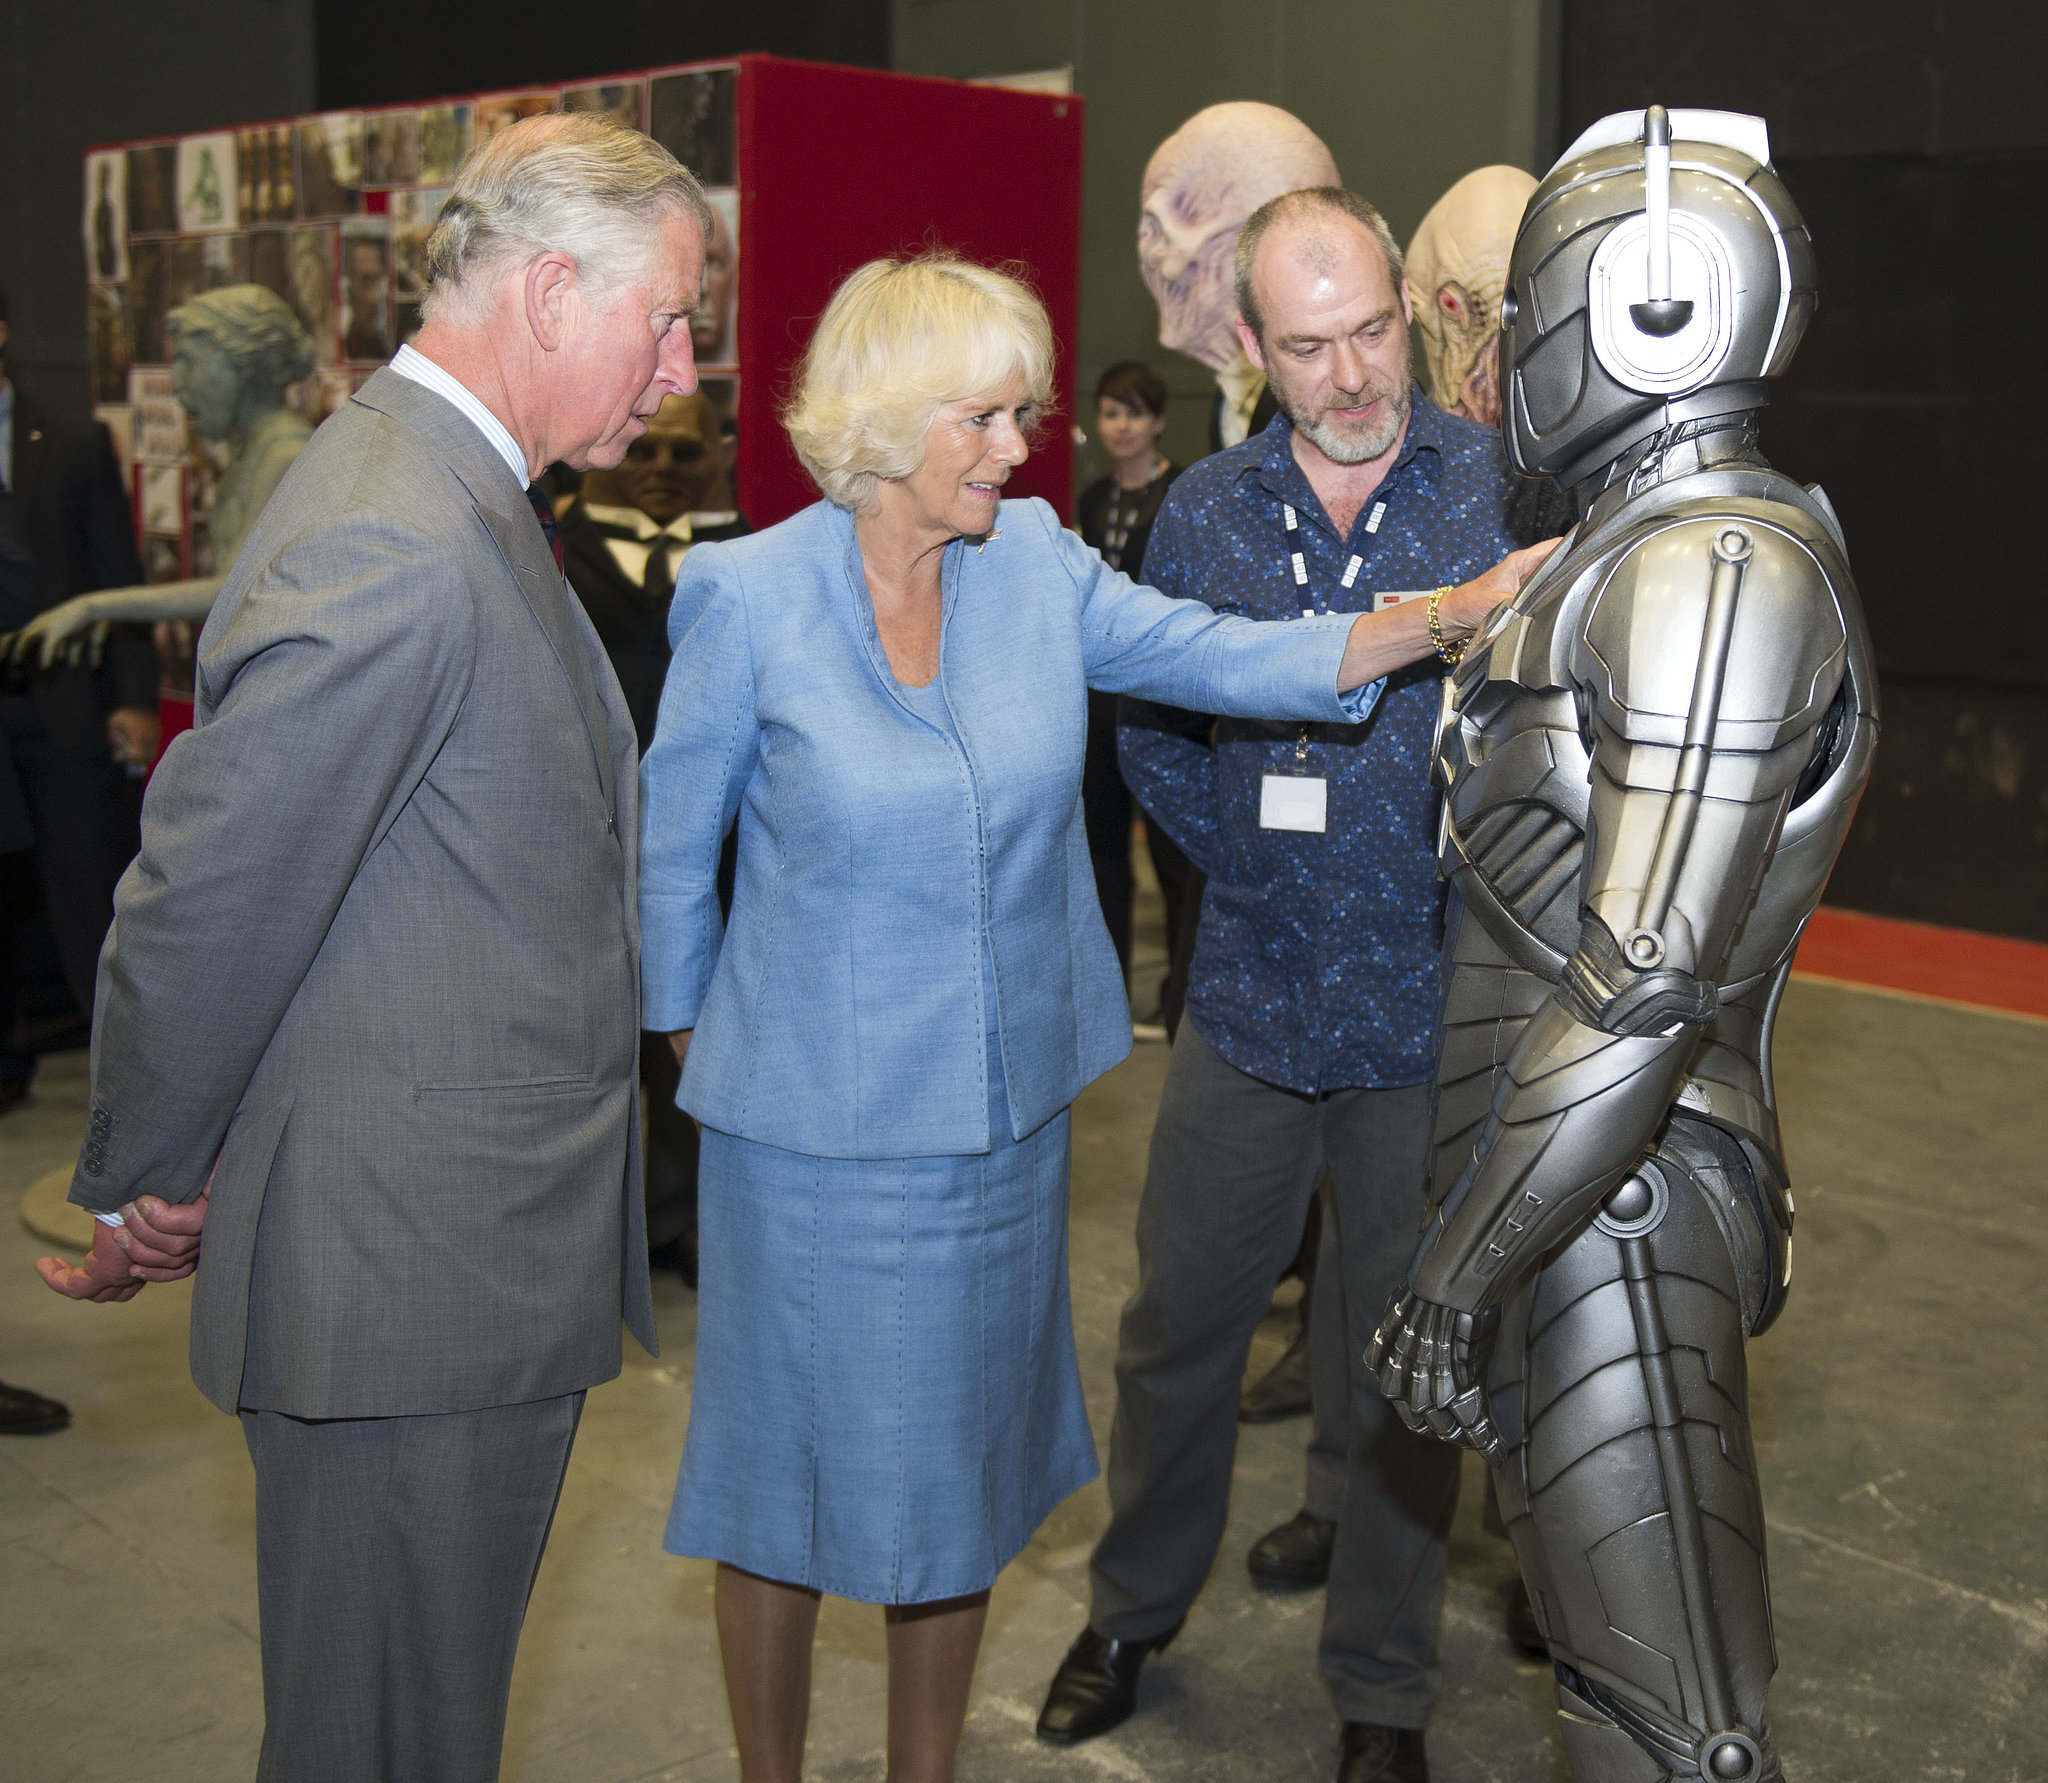 A Cyberman was much less fearsome without a metal army behind him.